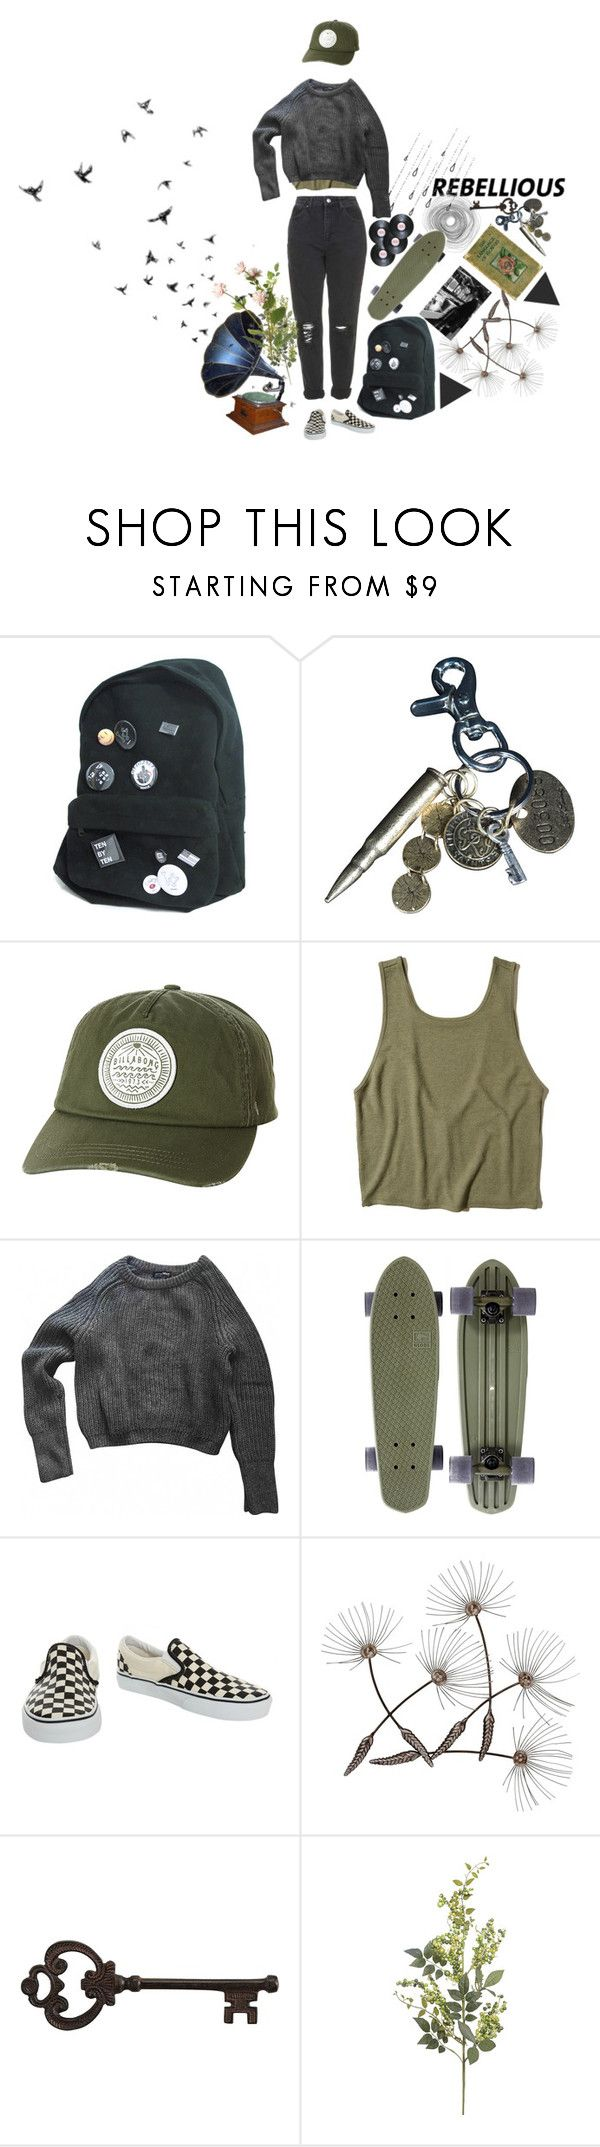 """""""sOciEtY asKs """"hOw dO yOu MaKe fRieNdS sO eAsiLy"""" aNd i sAy :"""" by untitledrebellion ❤ liked on Polyvore featuring AllSaints, Billabong, Hollister Co., American Apparel, Topshop, Vans, Pier 1 Imports, OKA and Brinley Co"""